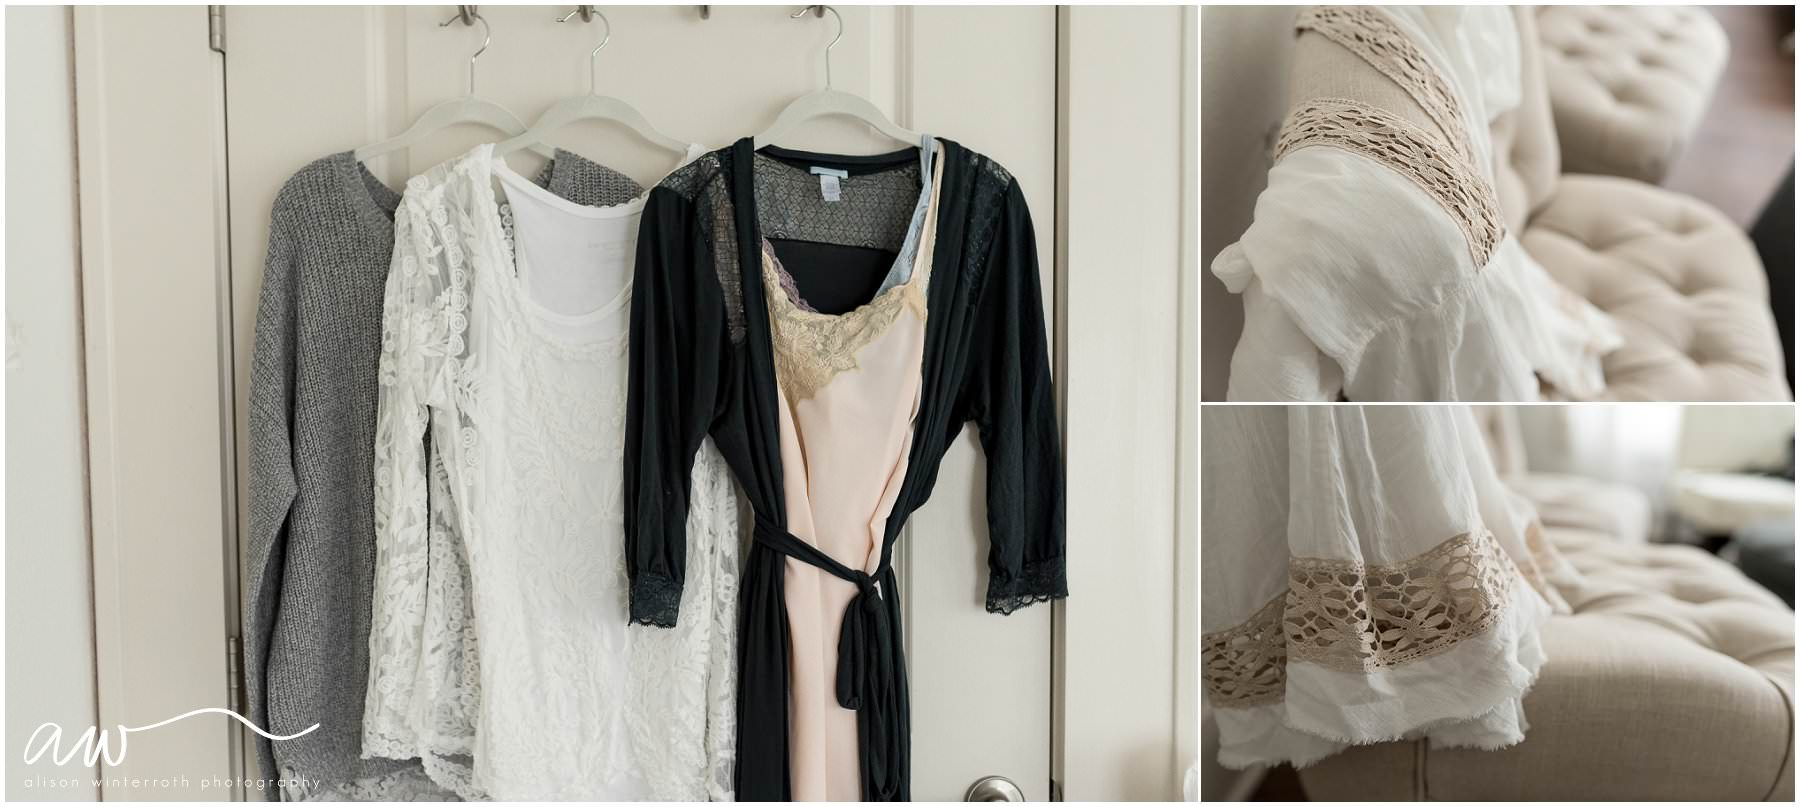 Tampa boudoir maternity clothing used in session